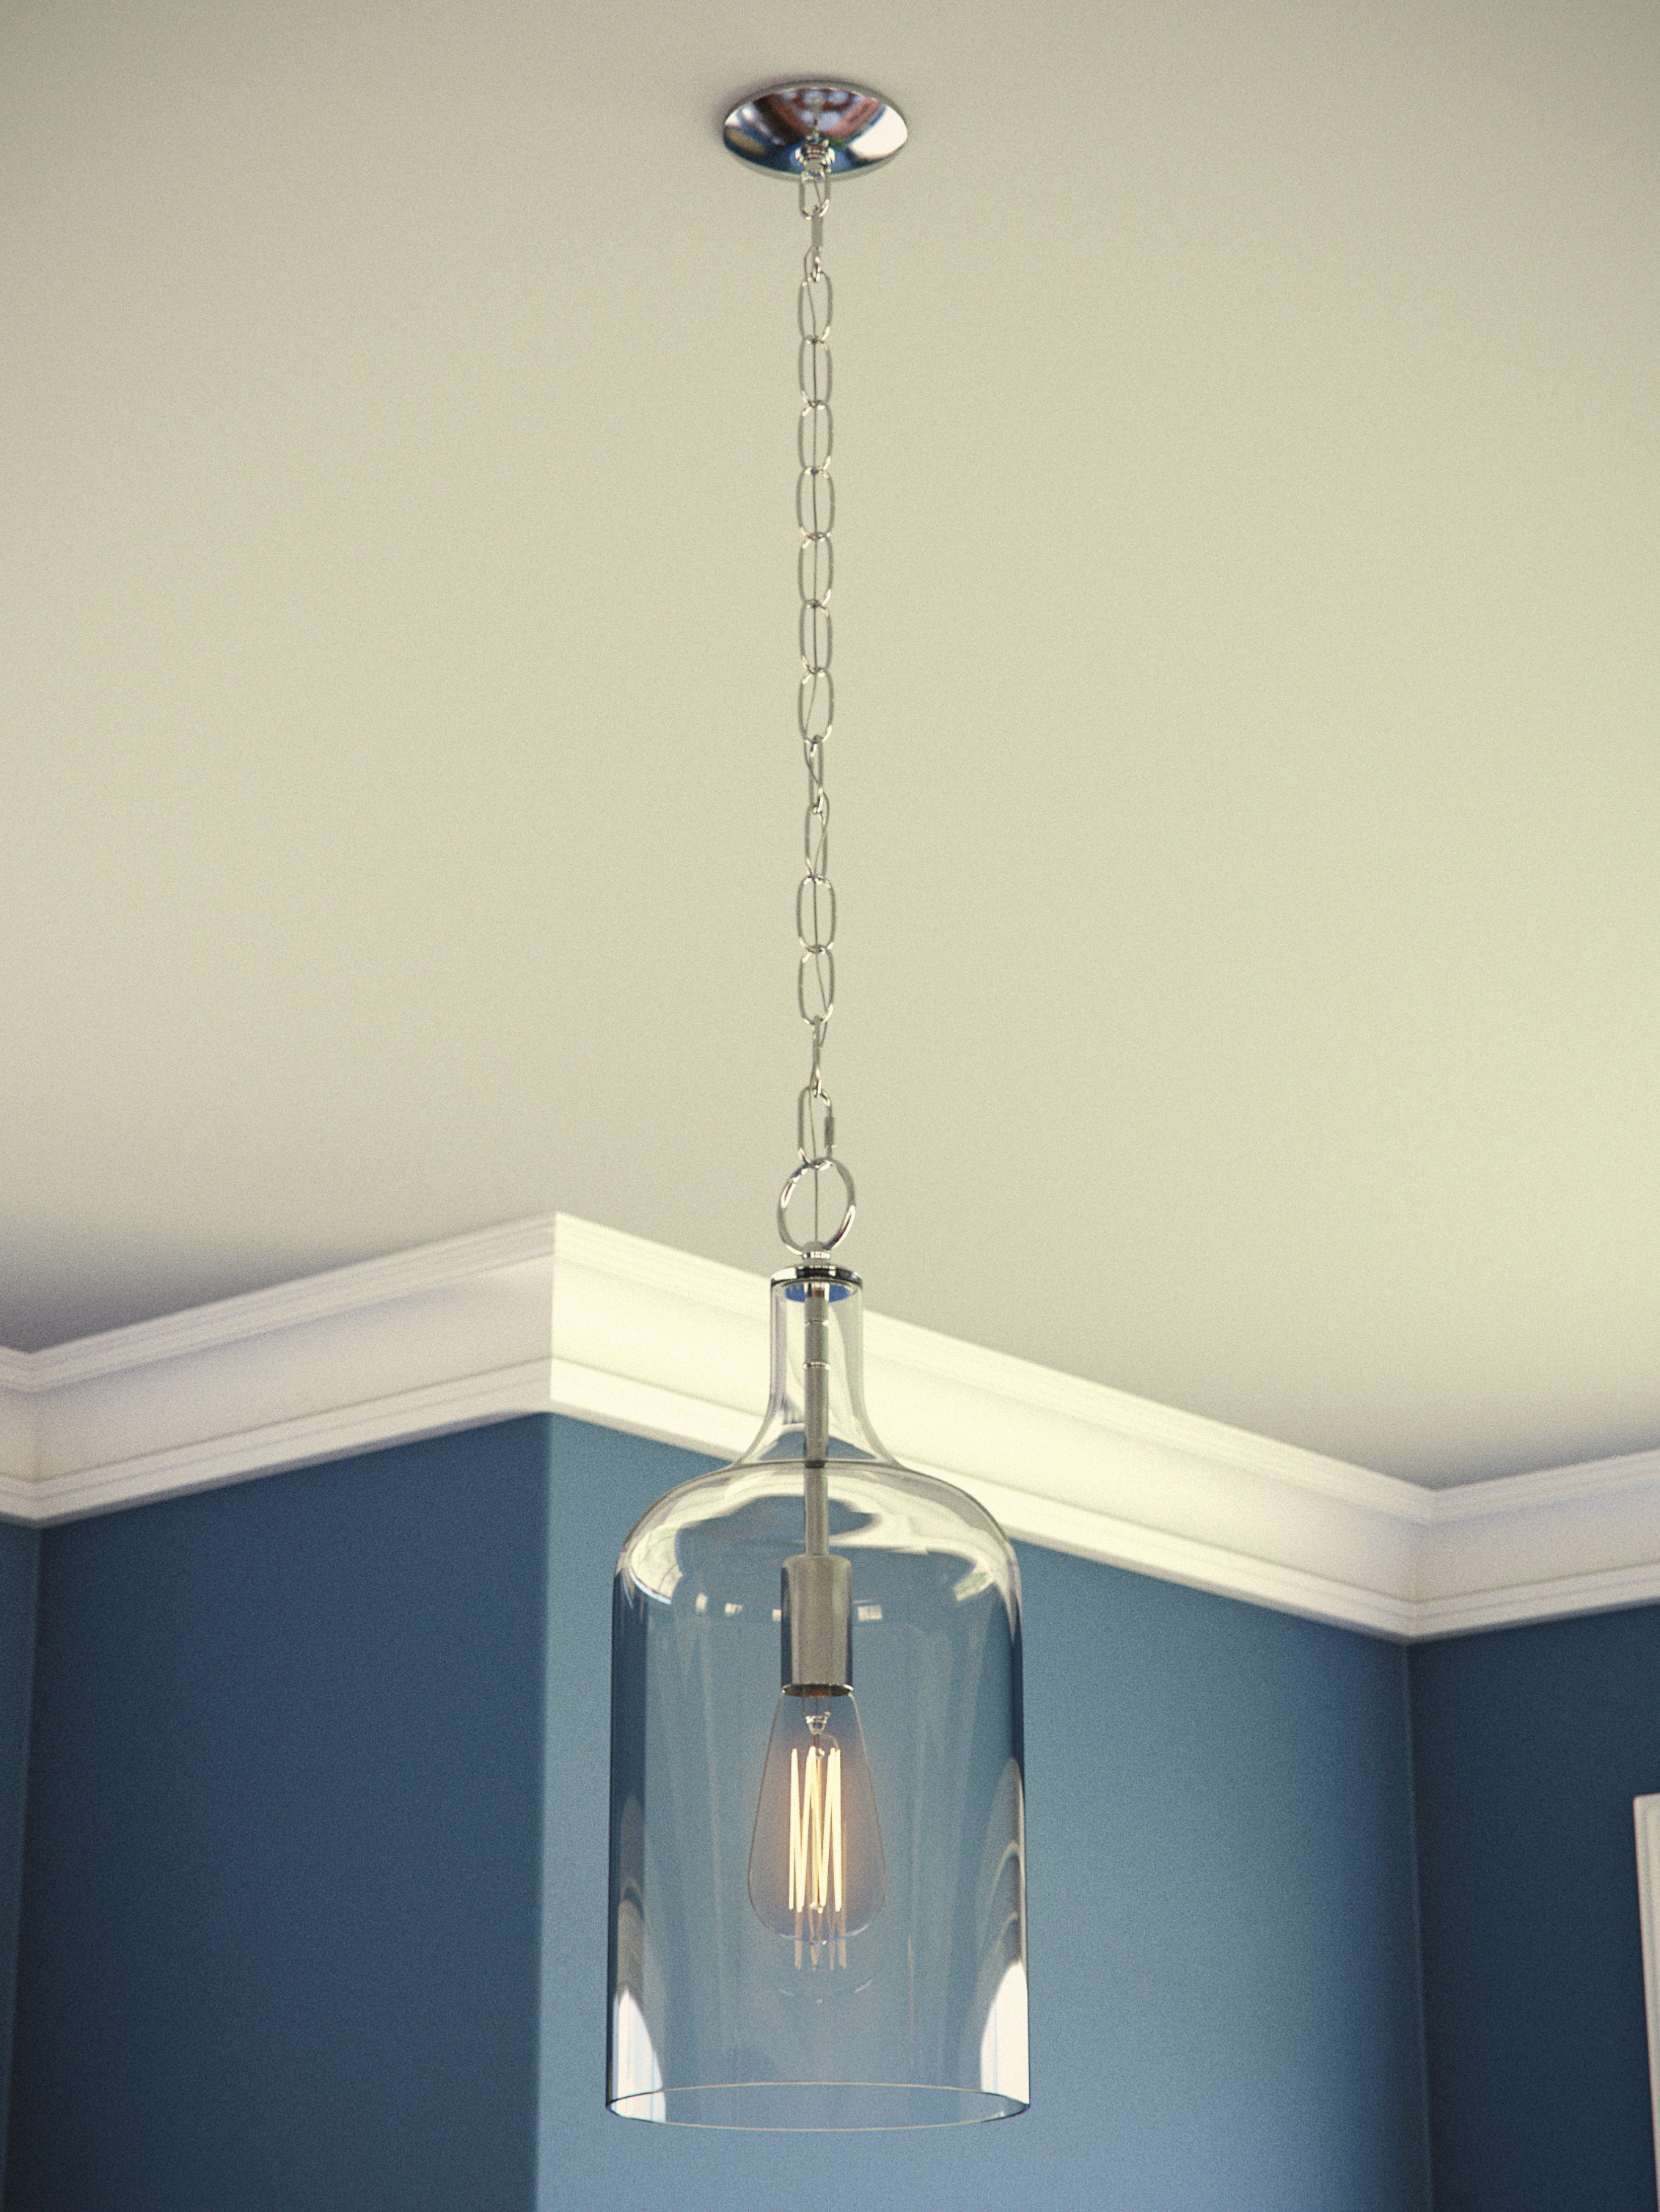 2019 Oldbury 1 Light Single Cylinder Pendants With Regard To Clematite 1 Light Single Jar Pendant (Gallery 5 of 20)